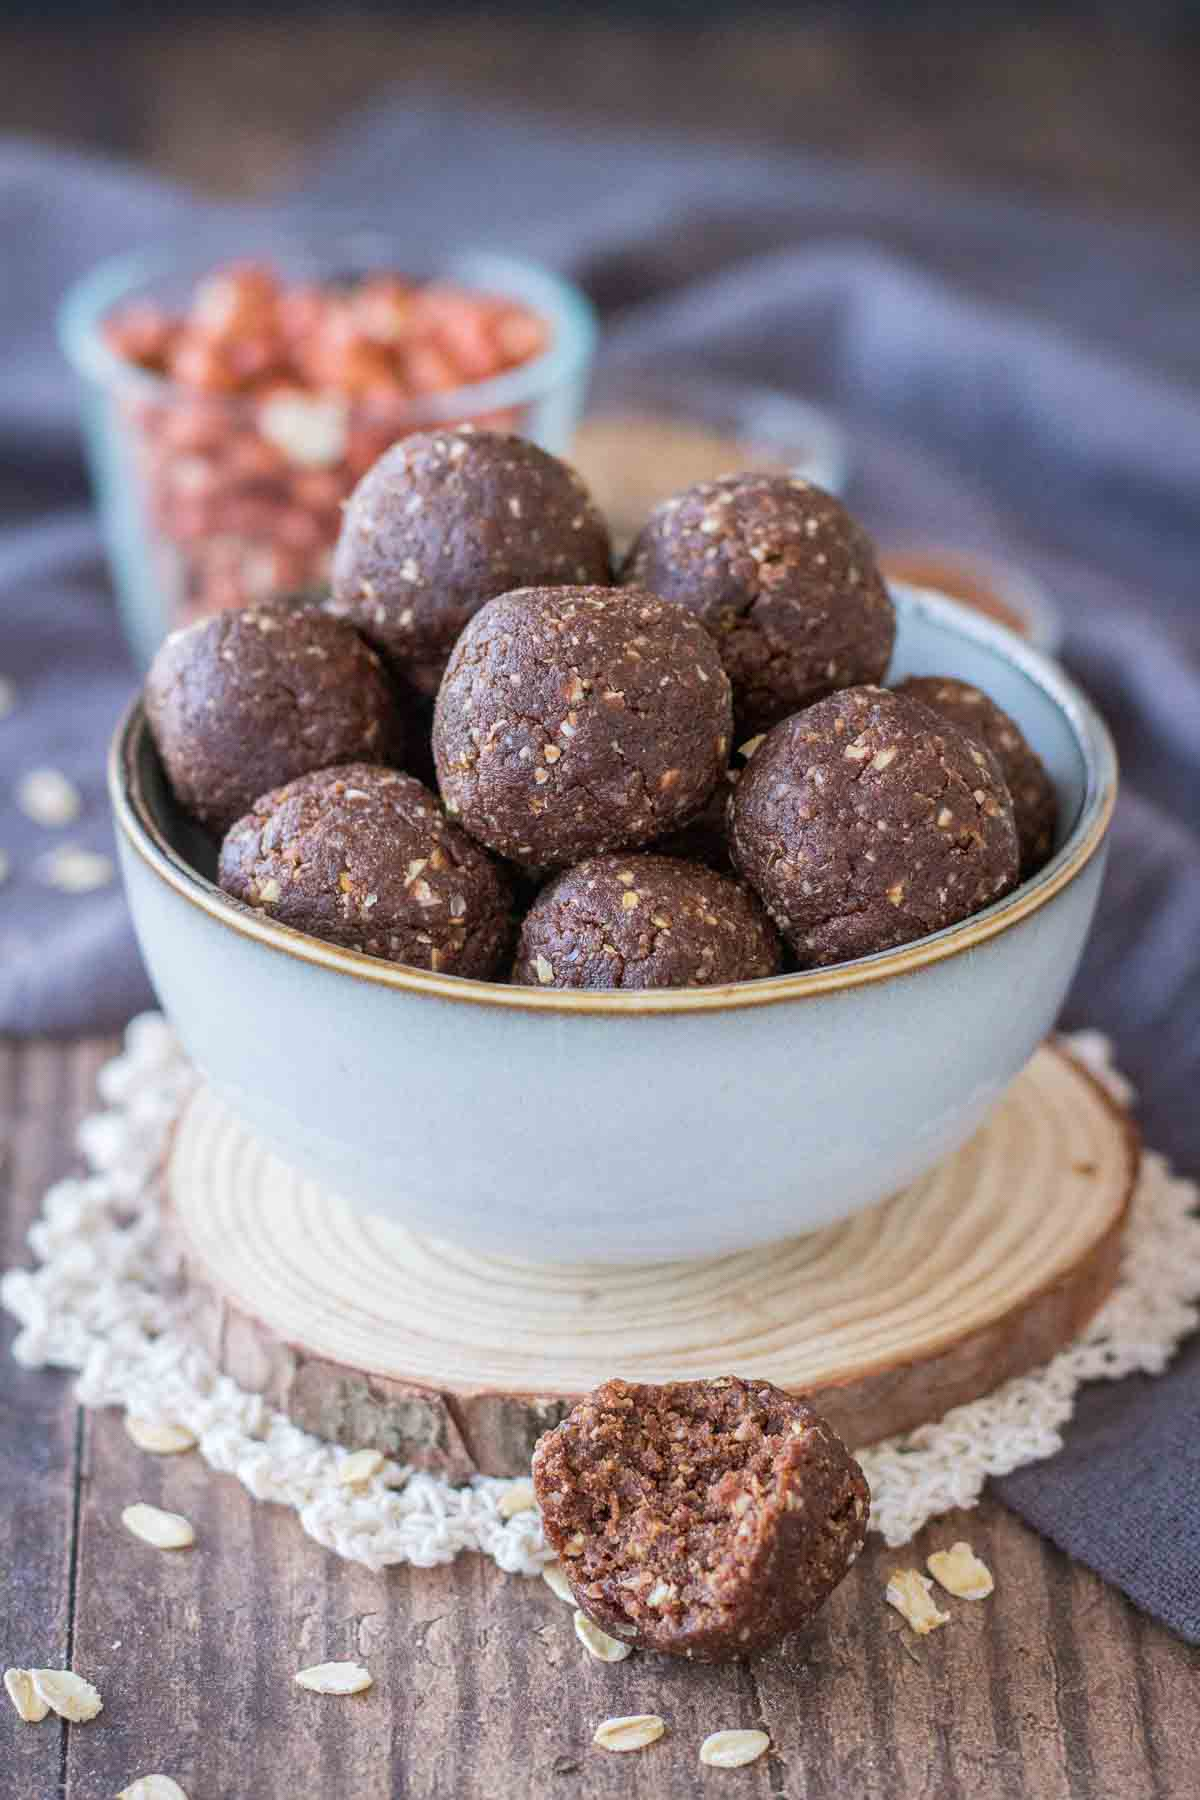 Chocolate Peanut Butter Protein Balls served in a small bowl